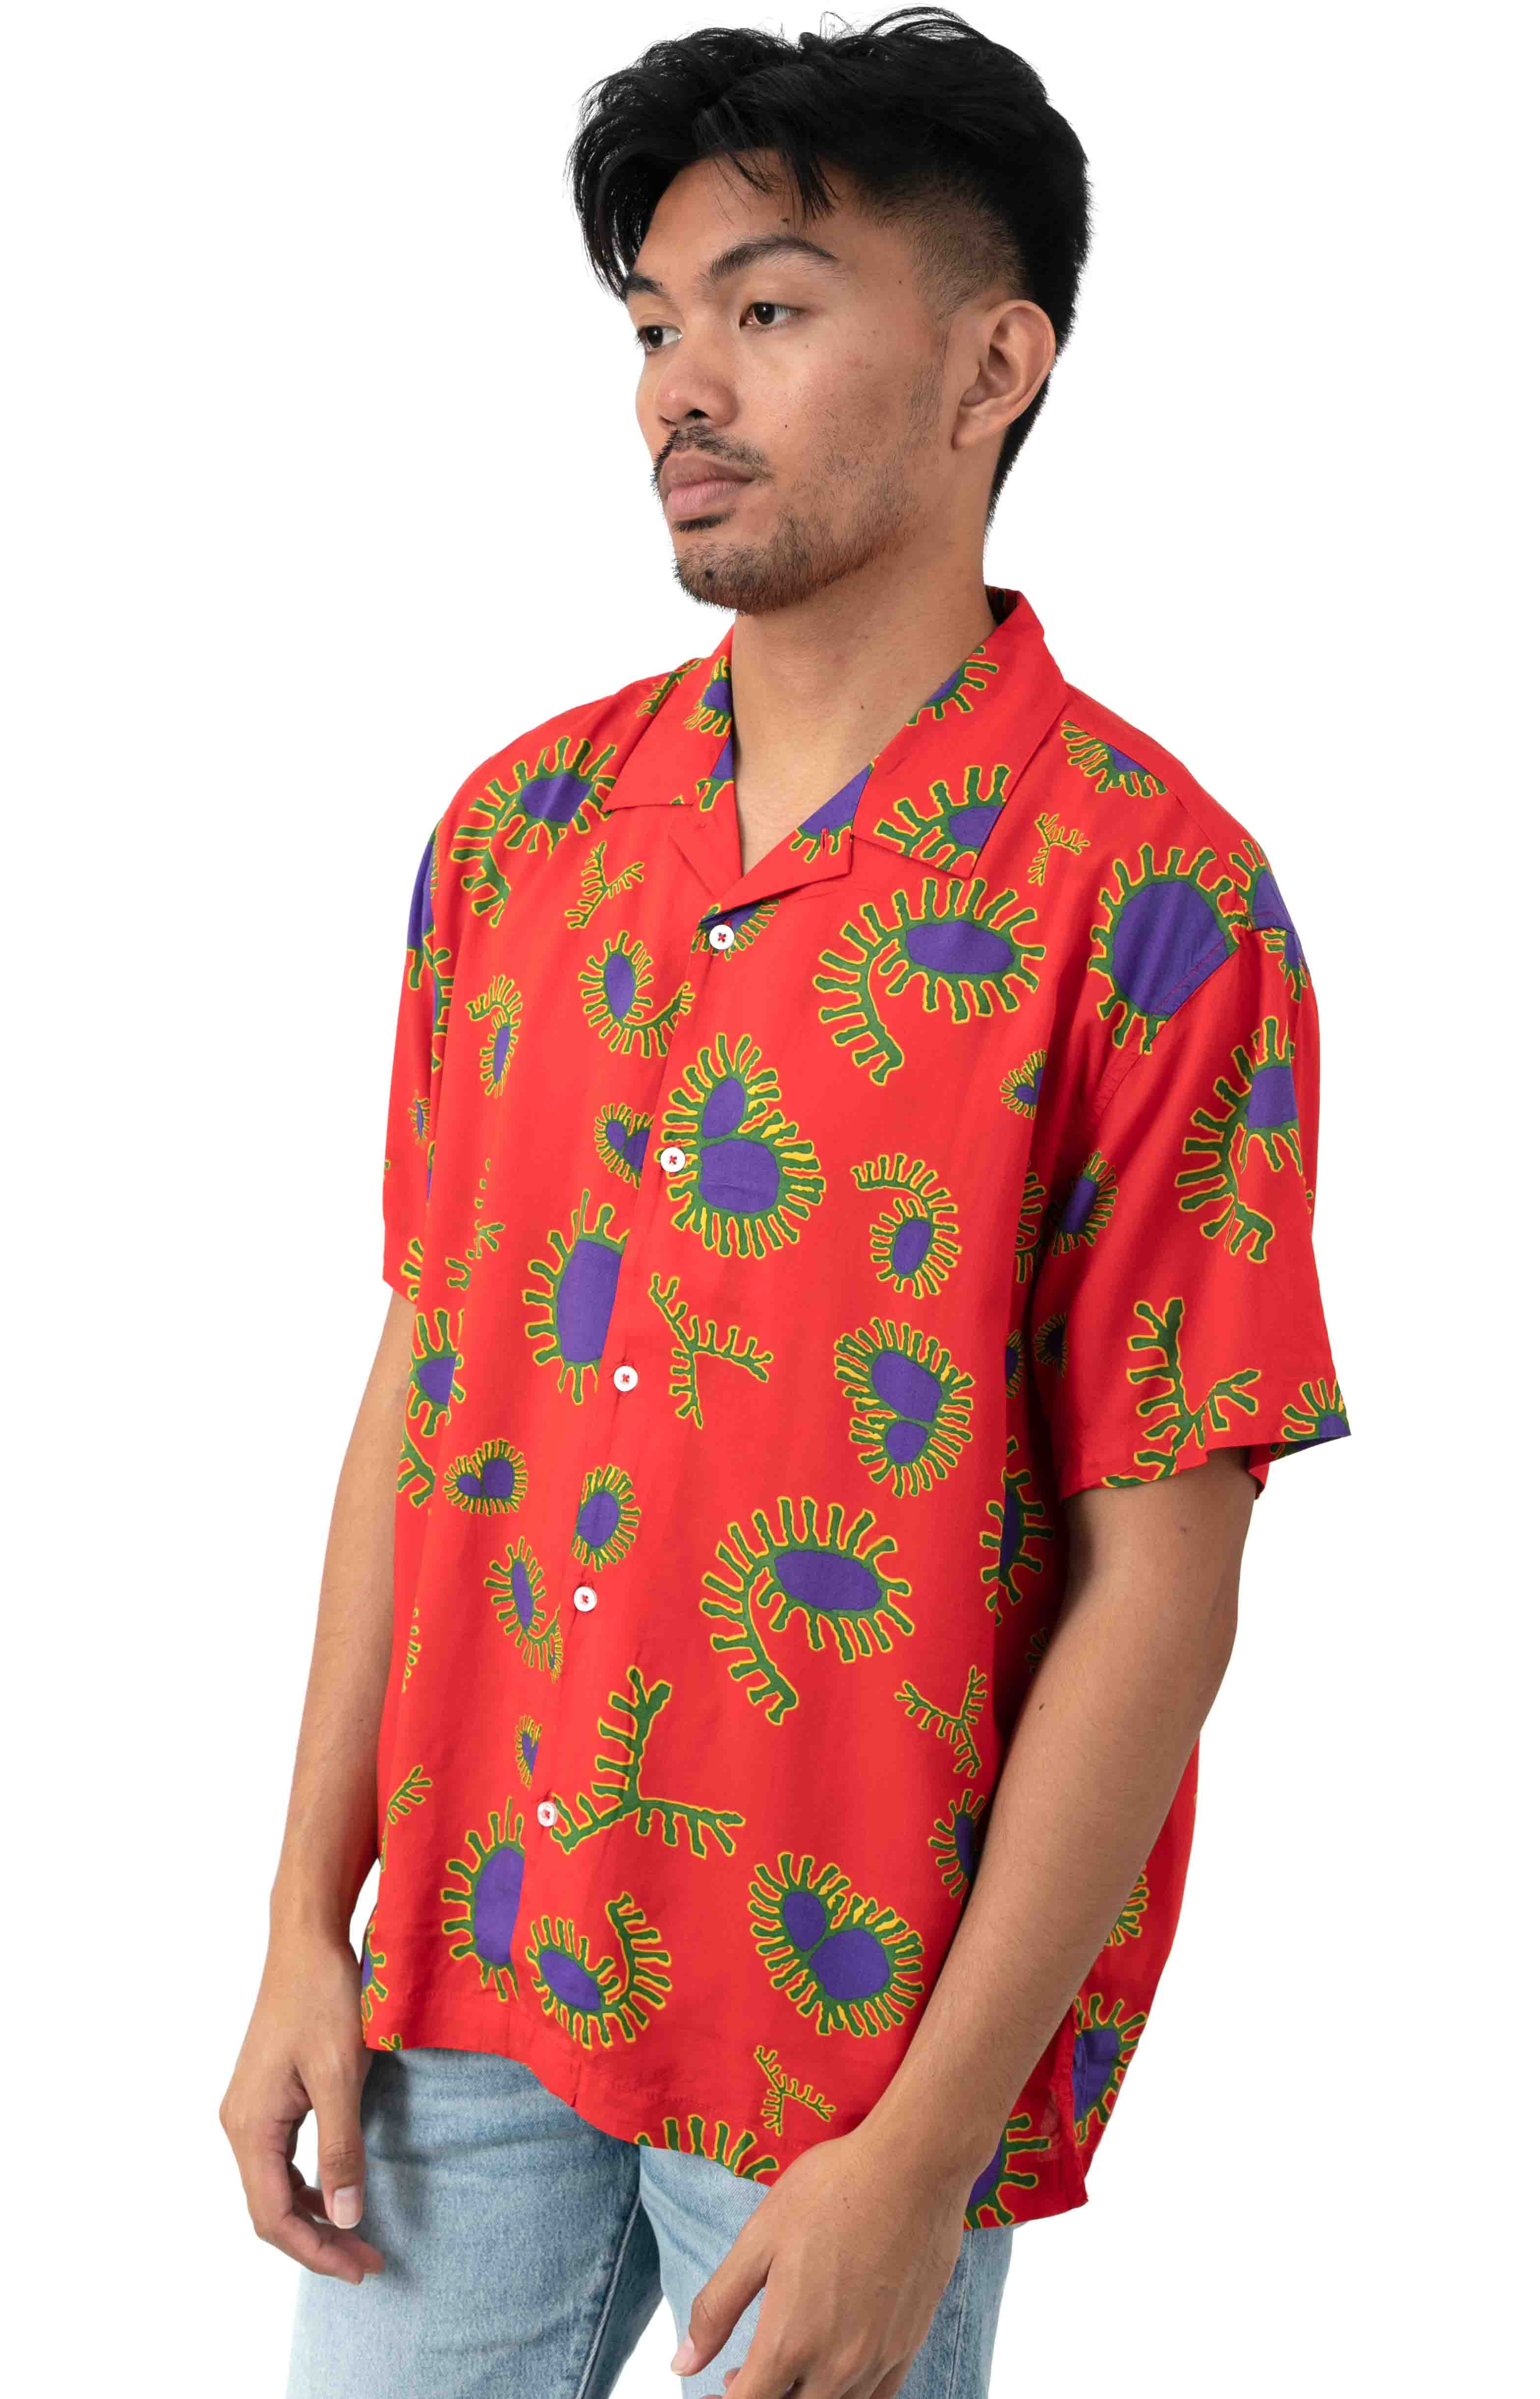 Duster Button-Up Shirt - Red Multi  2